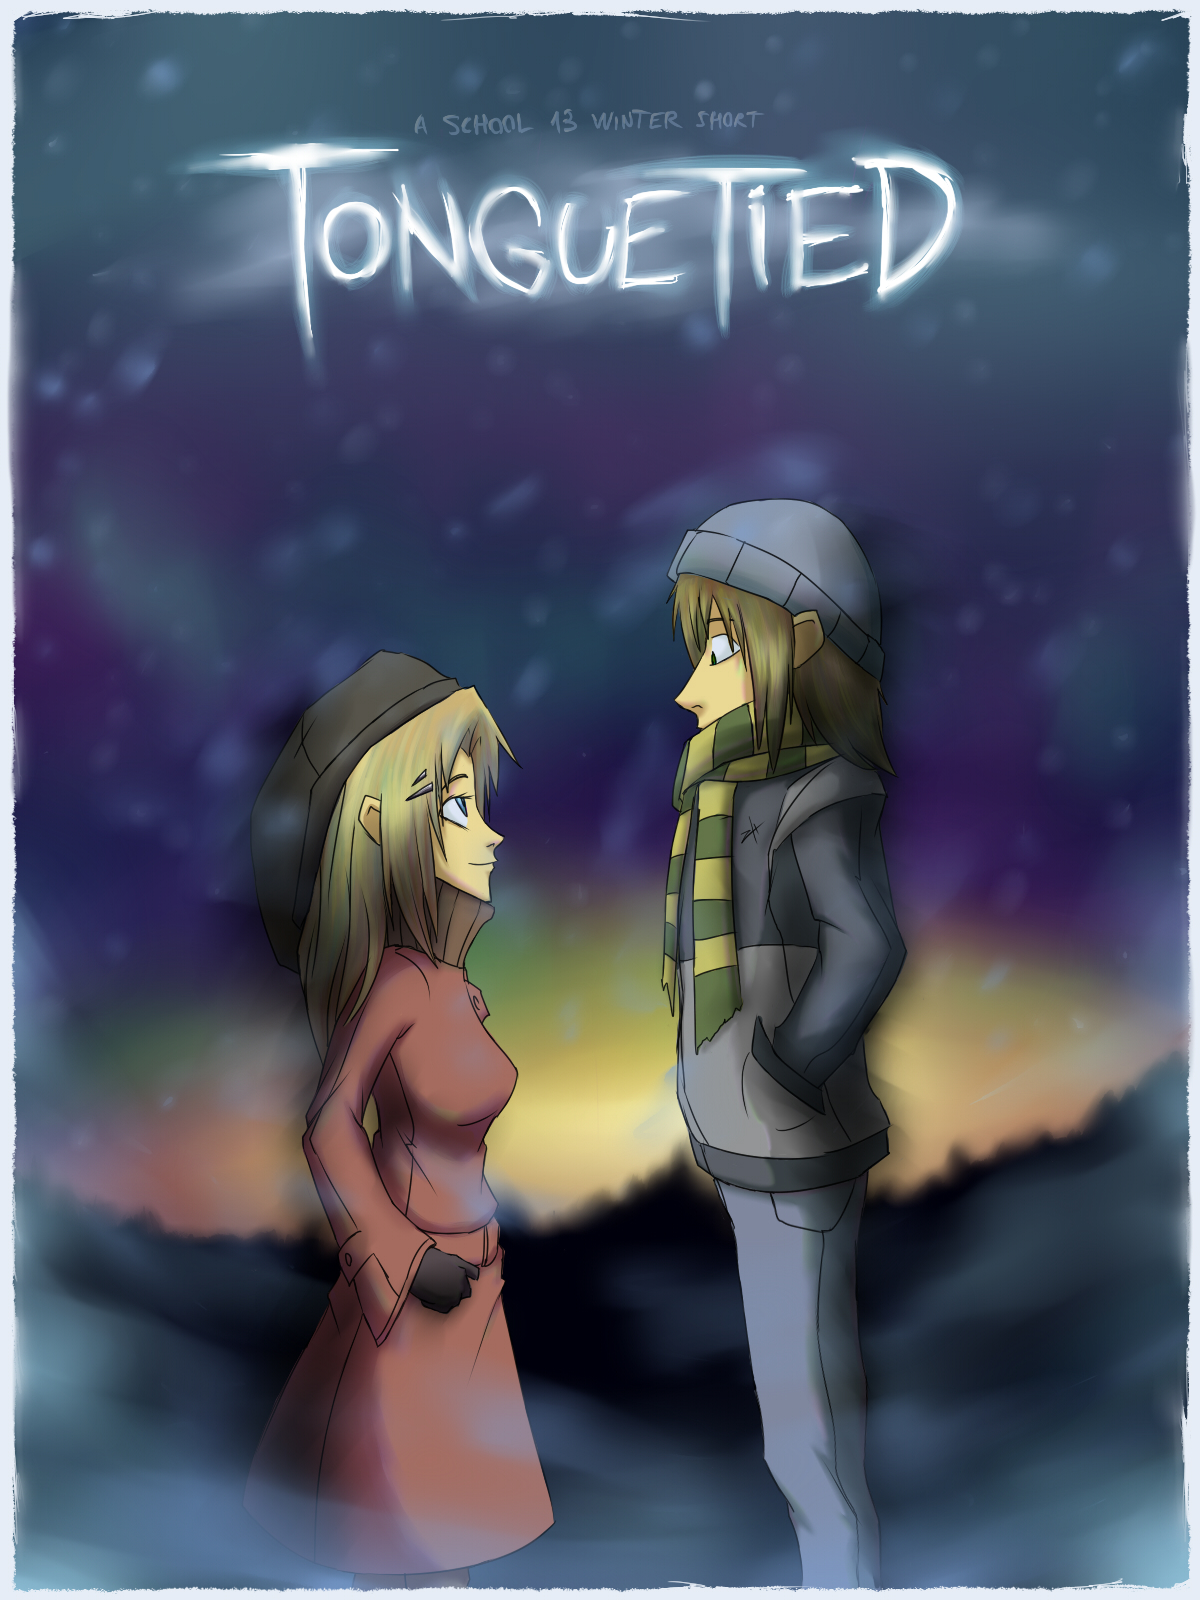 TongueTied Poster